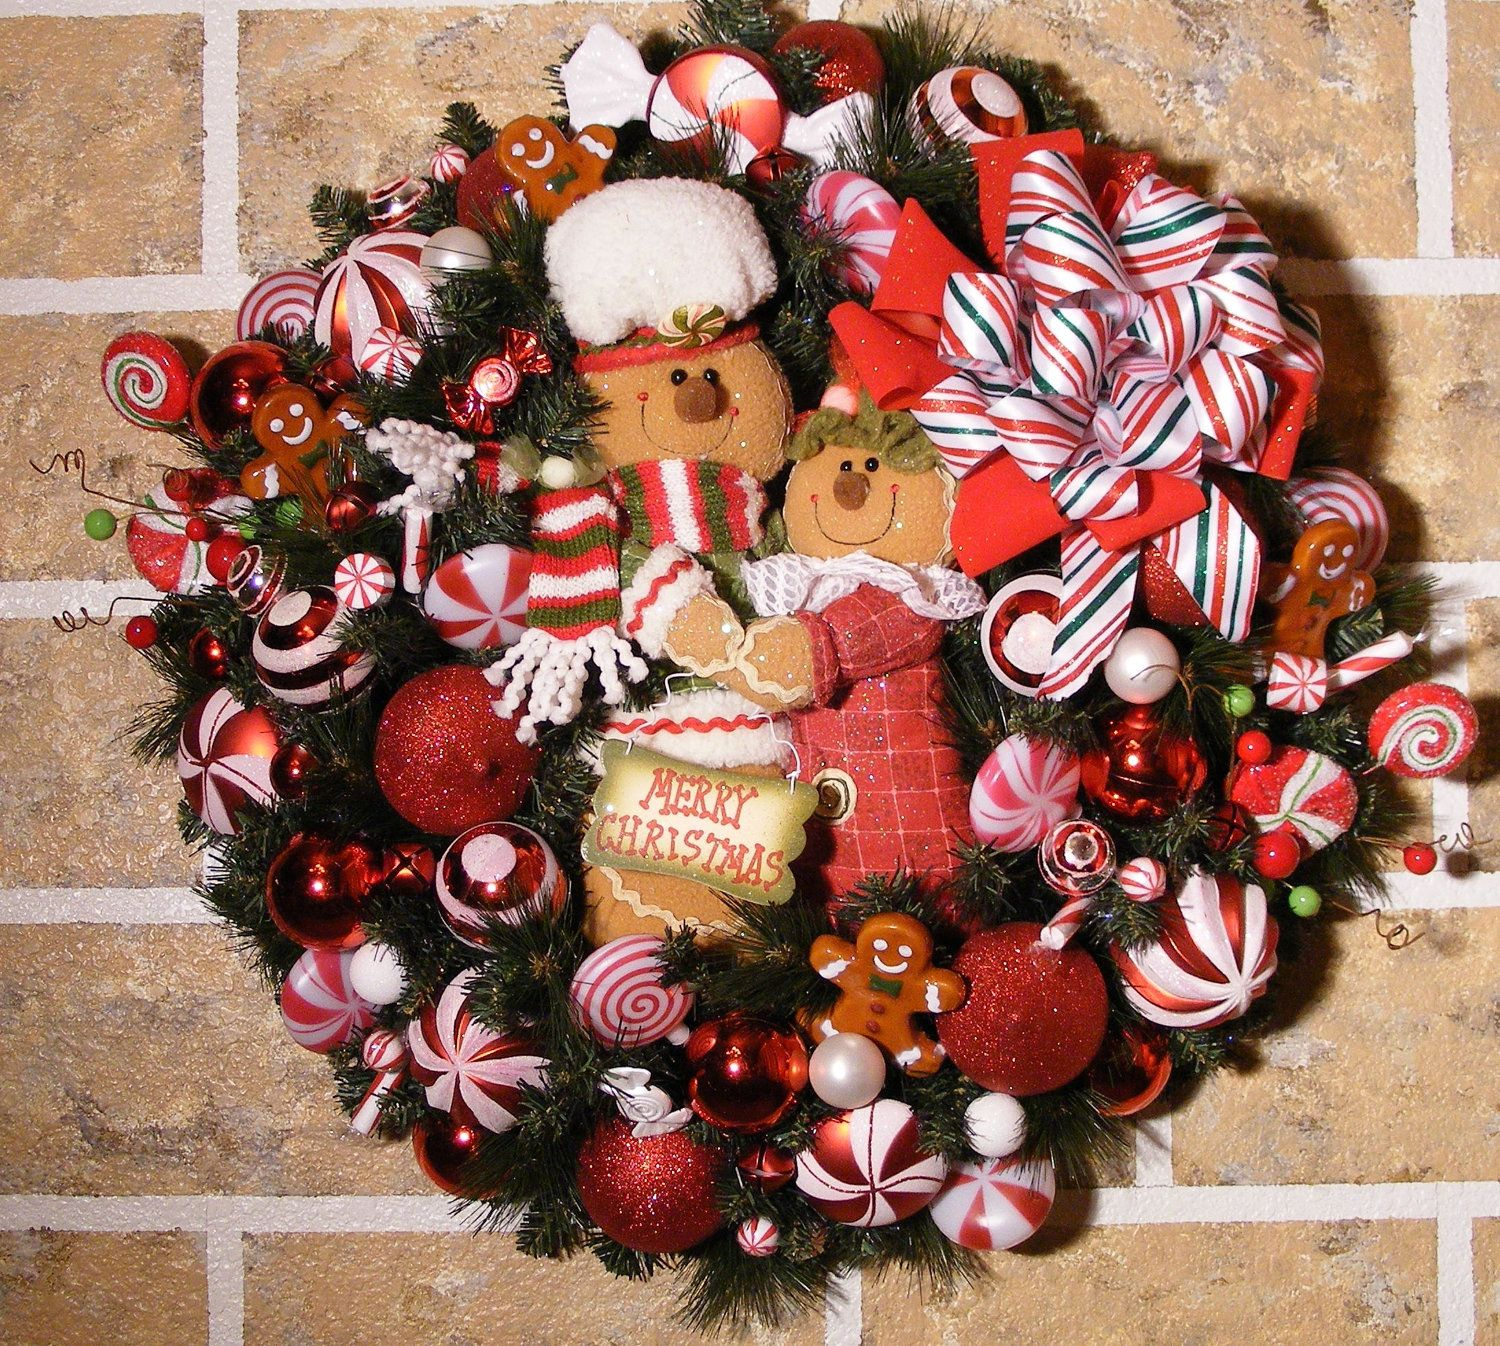 Holiday Frosted Candy Cane Gingerbread Man Decorated Christmas Wreath Christmas Decorations Wreaths Christmas Wreaths Christmas Gingerbread Men